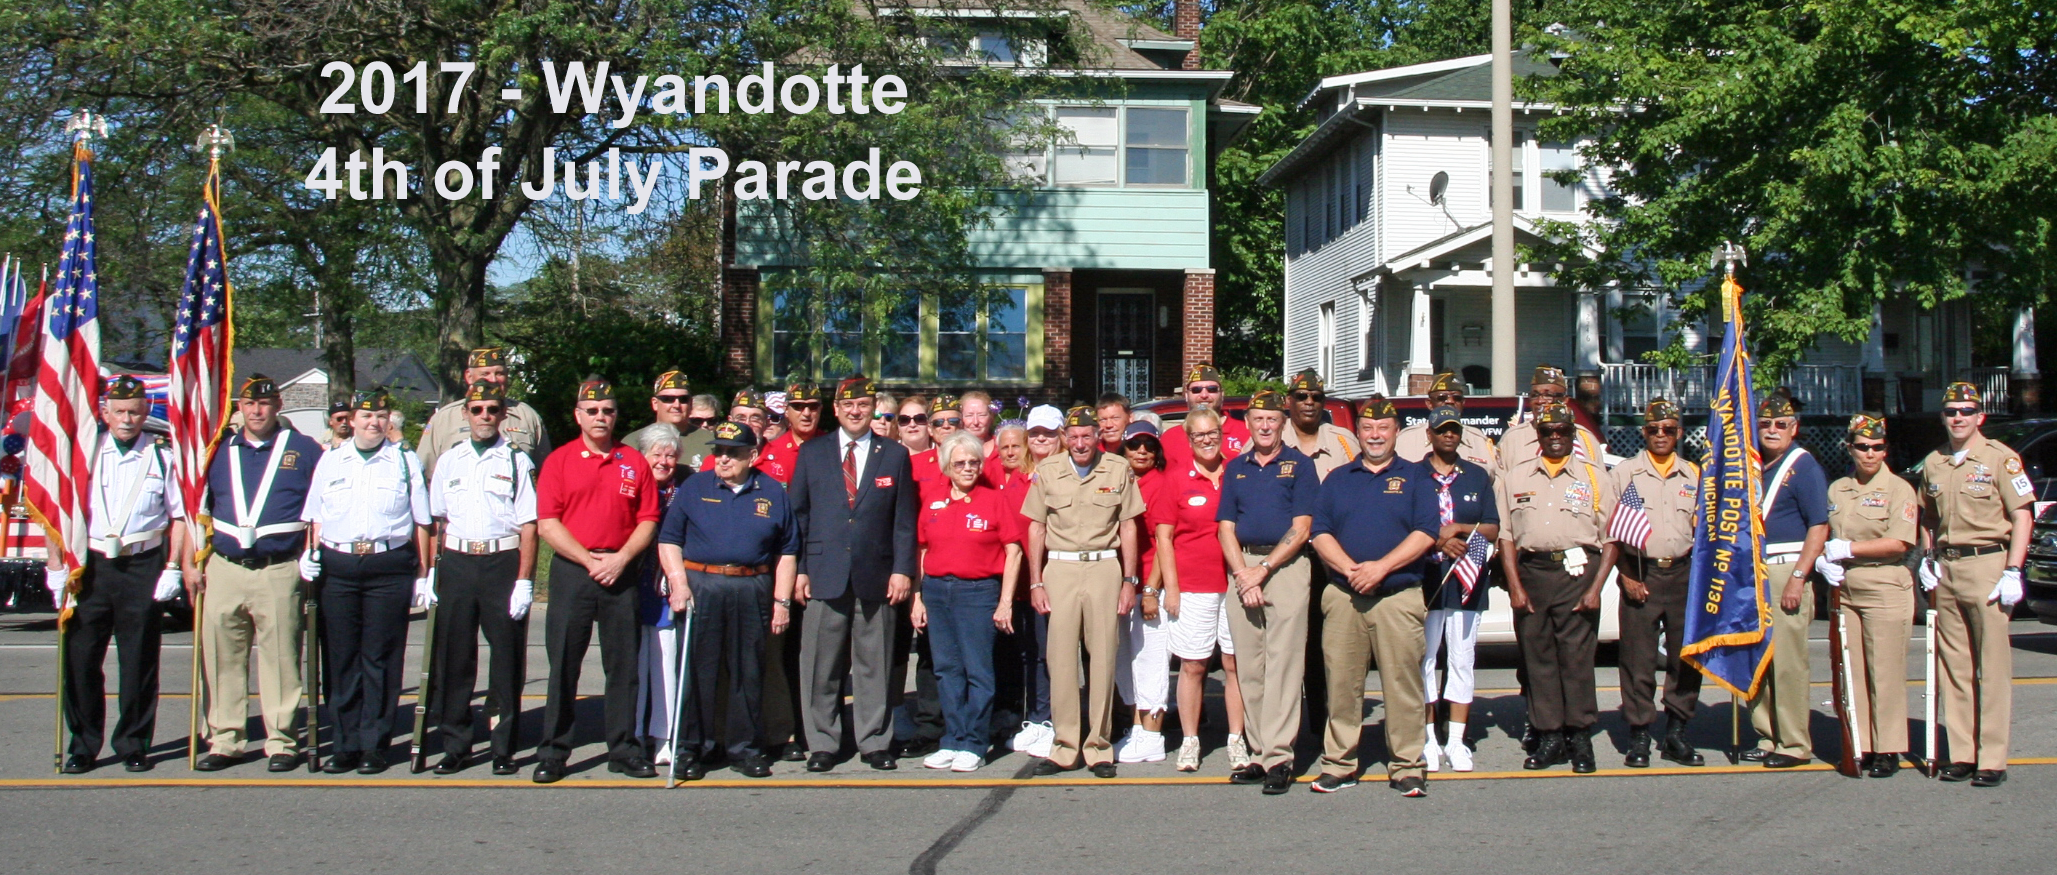 District 4 members assemble along with VFW State Commander Matt David before parade begins.